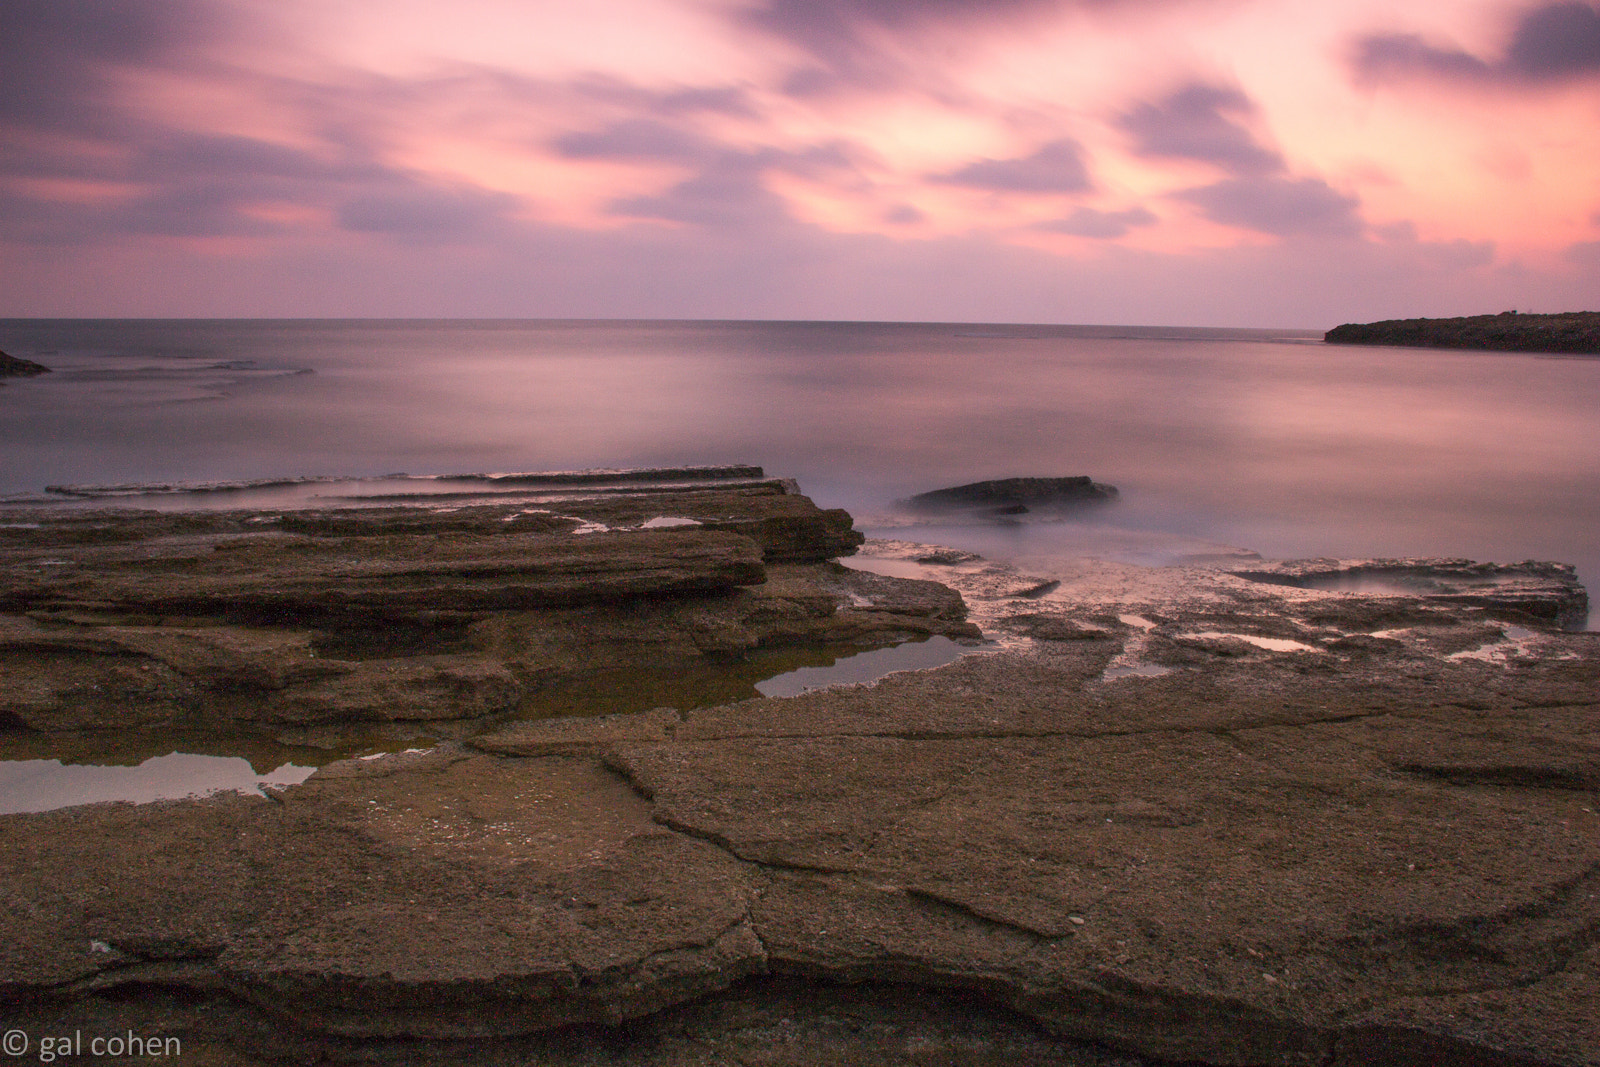 Photograph calm at the sea by Gal Cohen on 500px